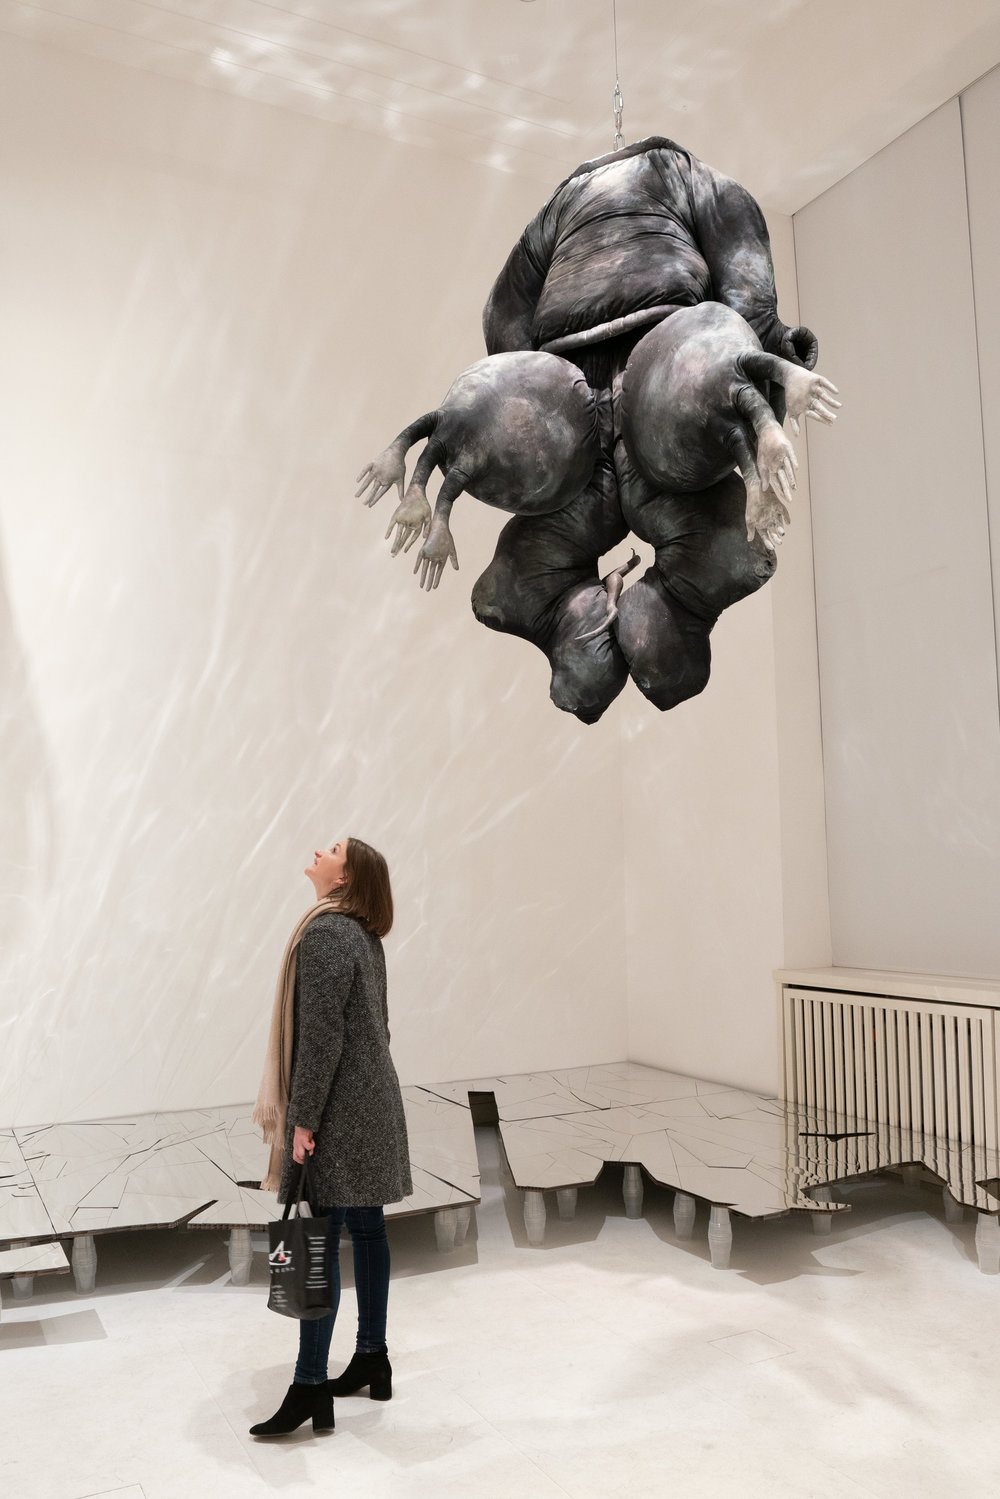 181117_Lee Bul_Crash, Martin-Gropius-Bau_01.jpg